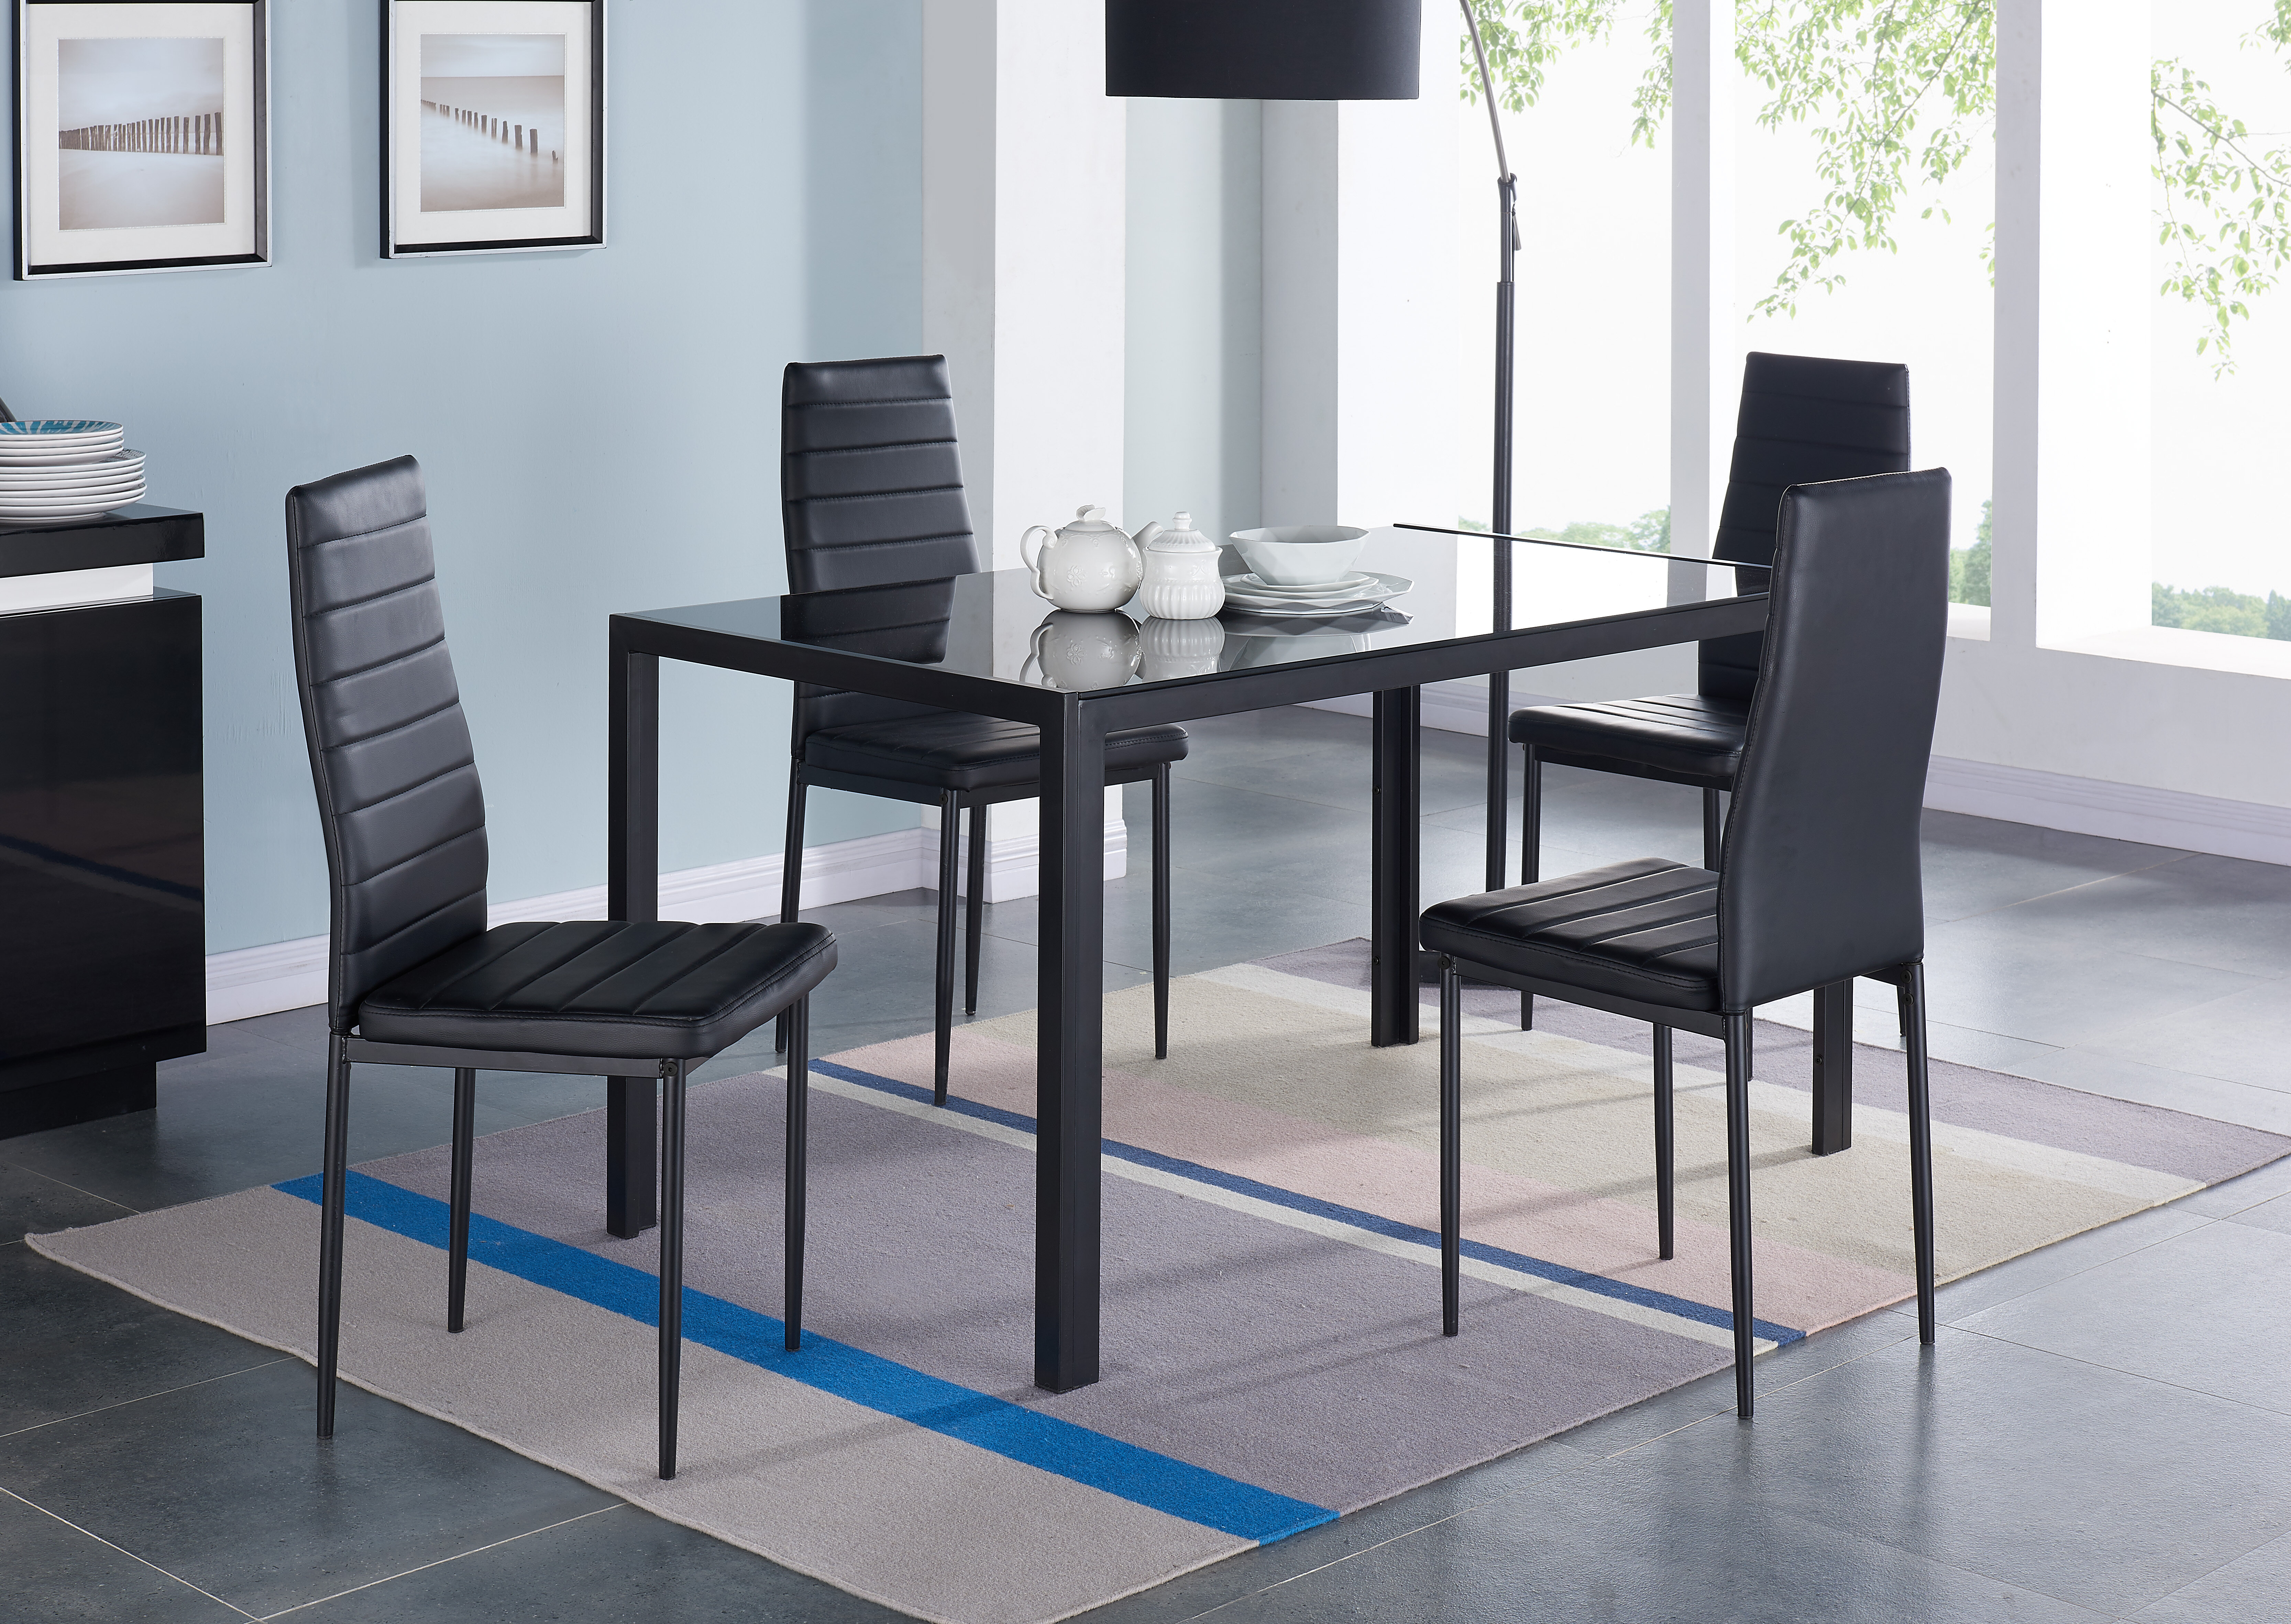 Wondrous Ulverston Glass Dining Table Set With 4 Chairs Download Free Architecture Designs Viewormadebymaigaardcom